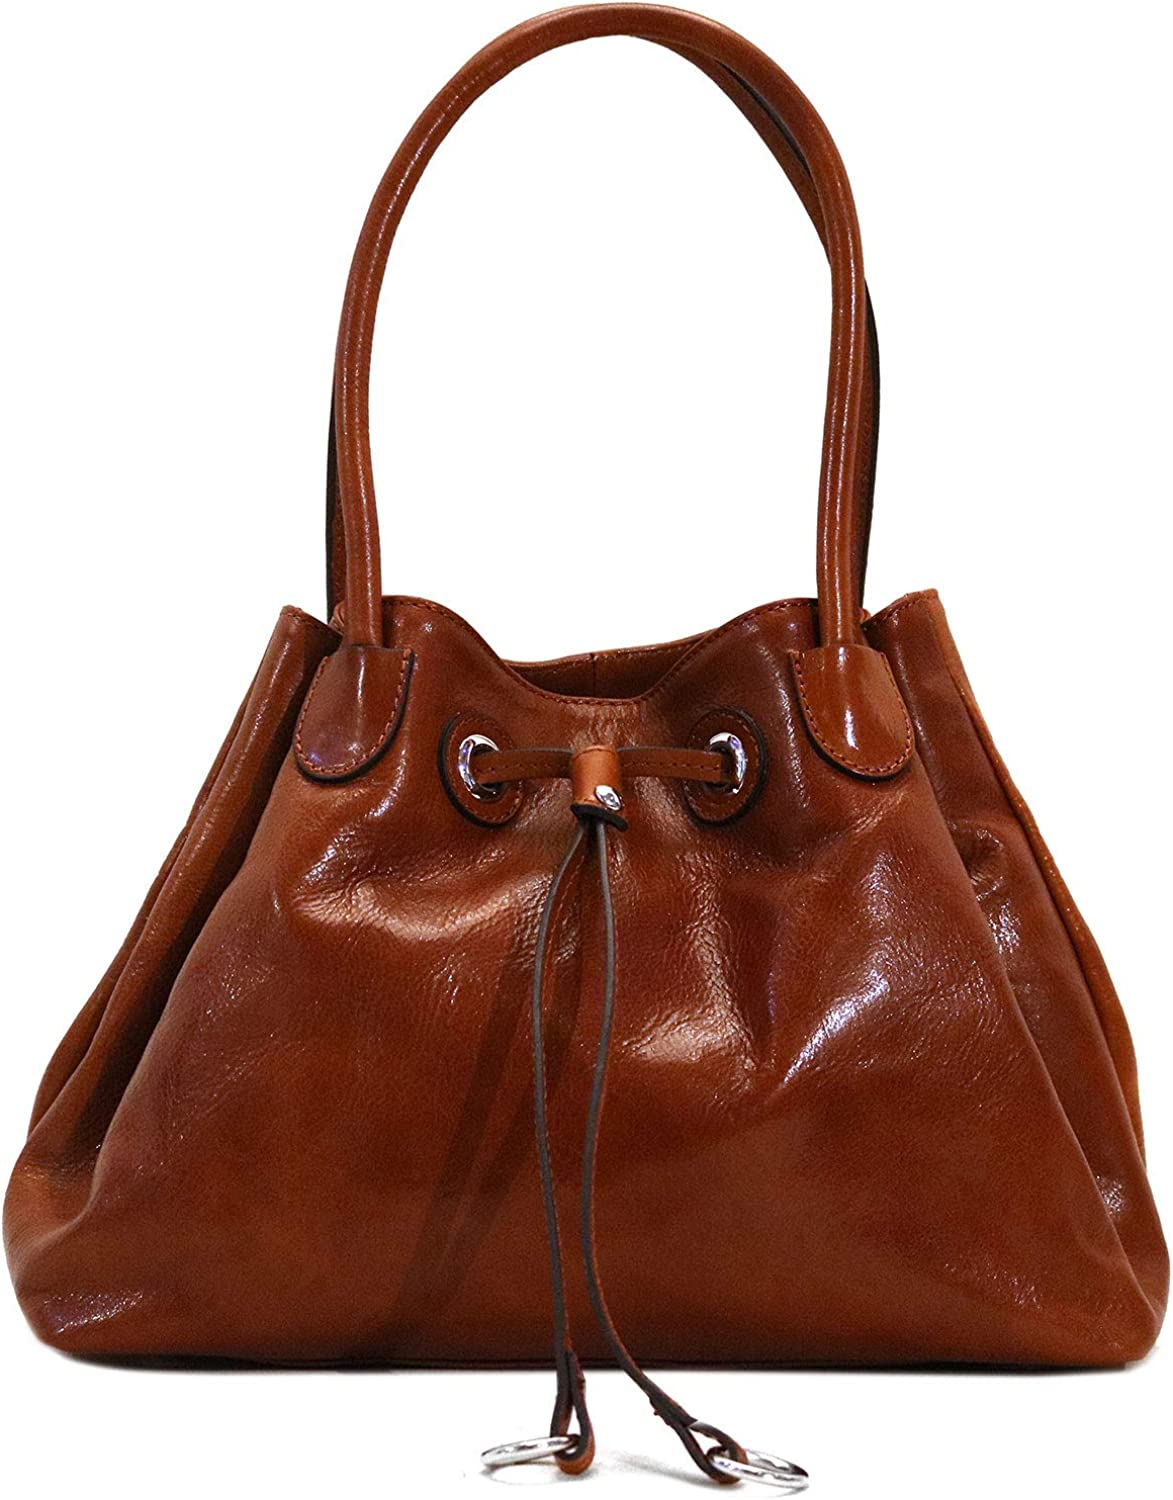 Floto Sorrento Shoulder Bag Hobo Handbag Women's Leather Bag